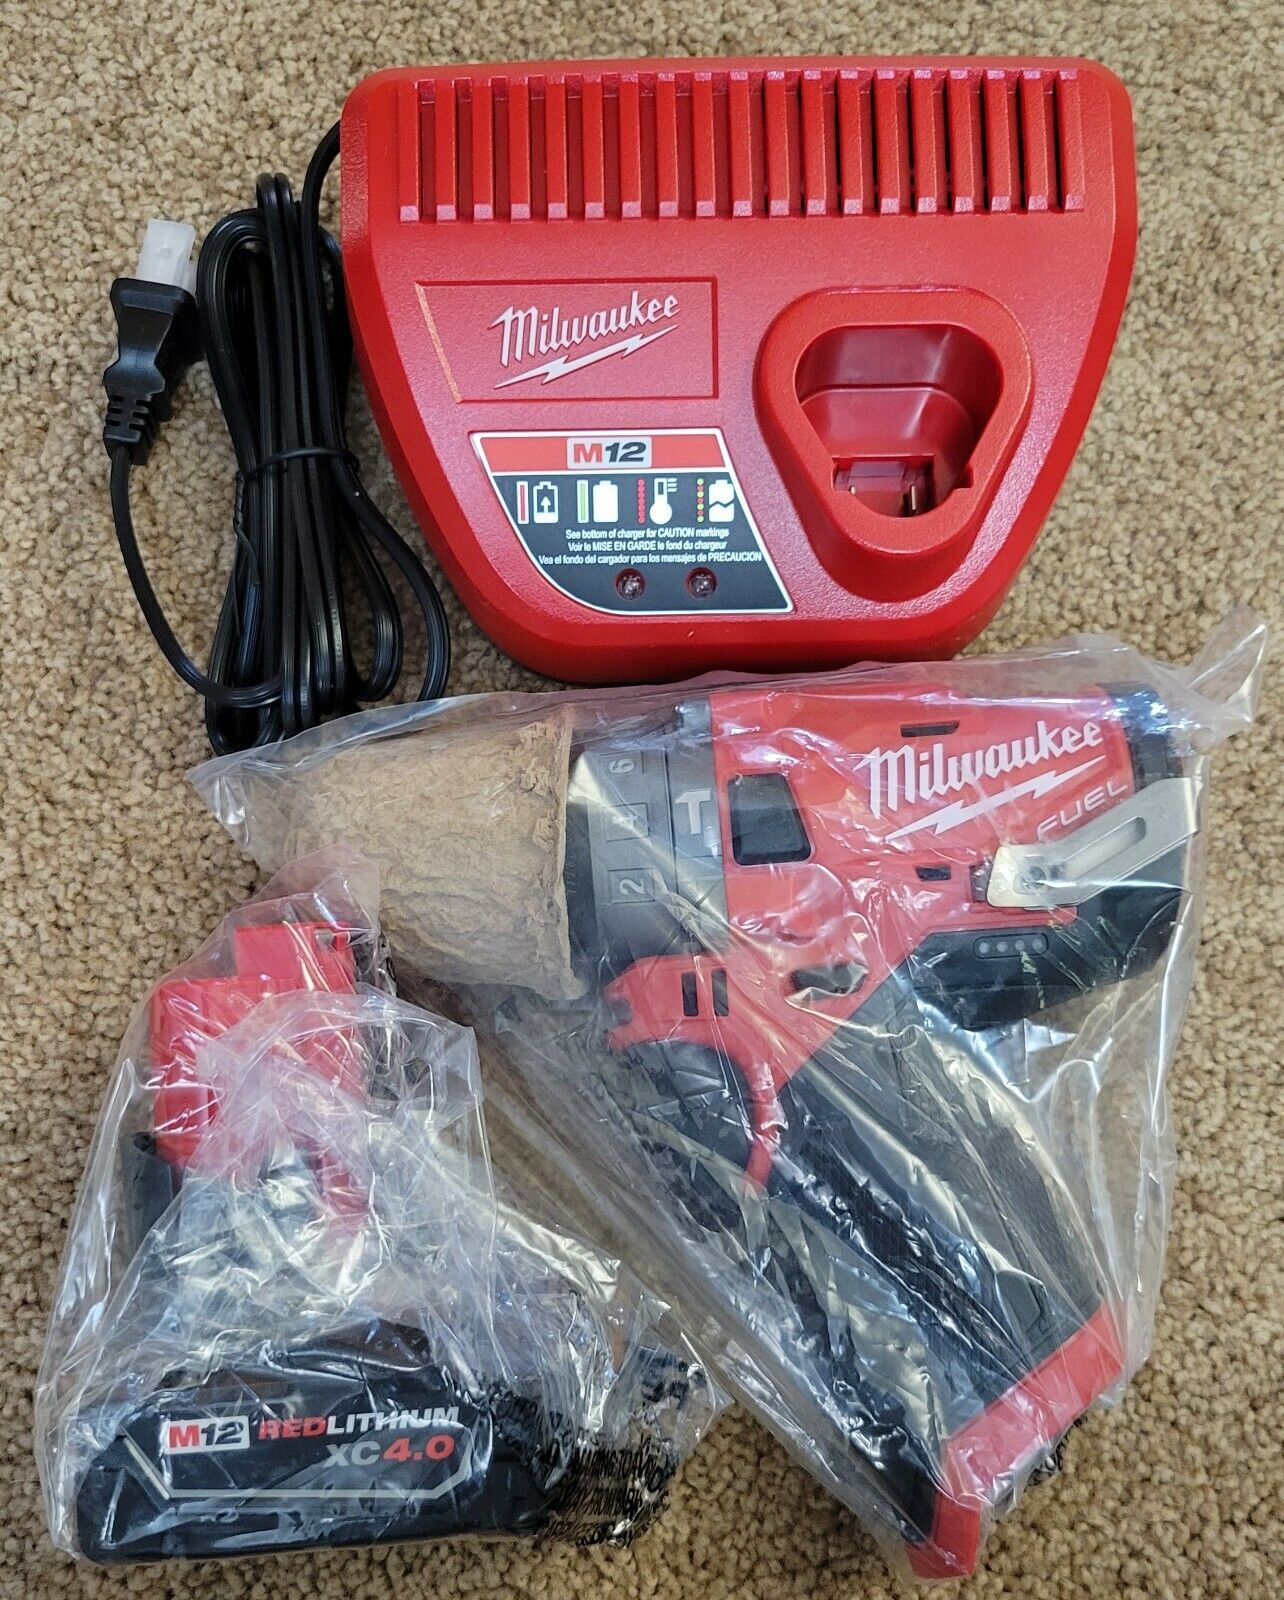 New Milwaukee M12 Hammer Drill Driver 2504-20 + 4.0Ah Battery Charger Kit. Buy it now for 129.87